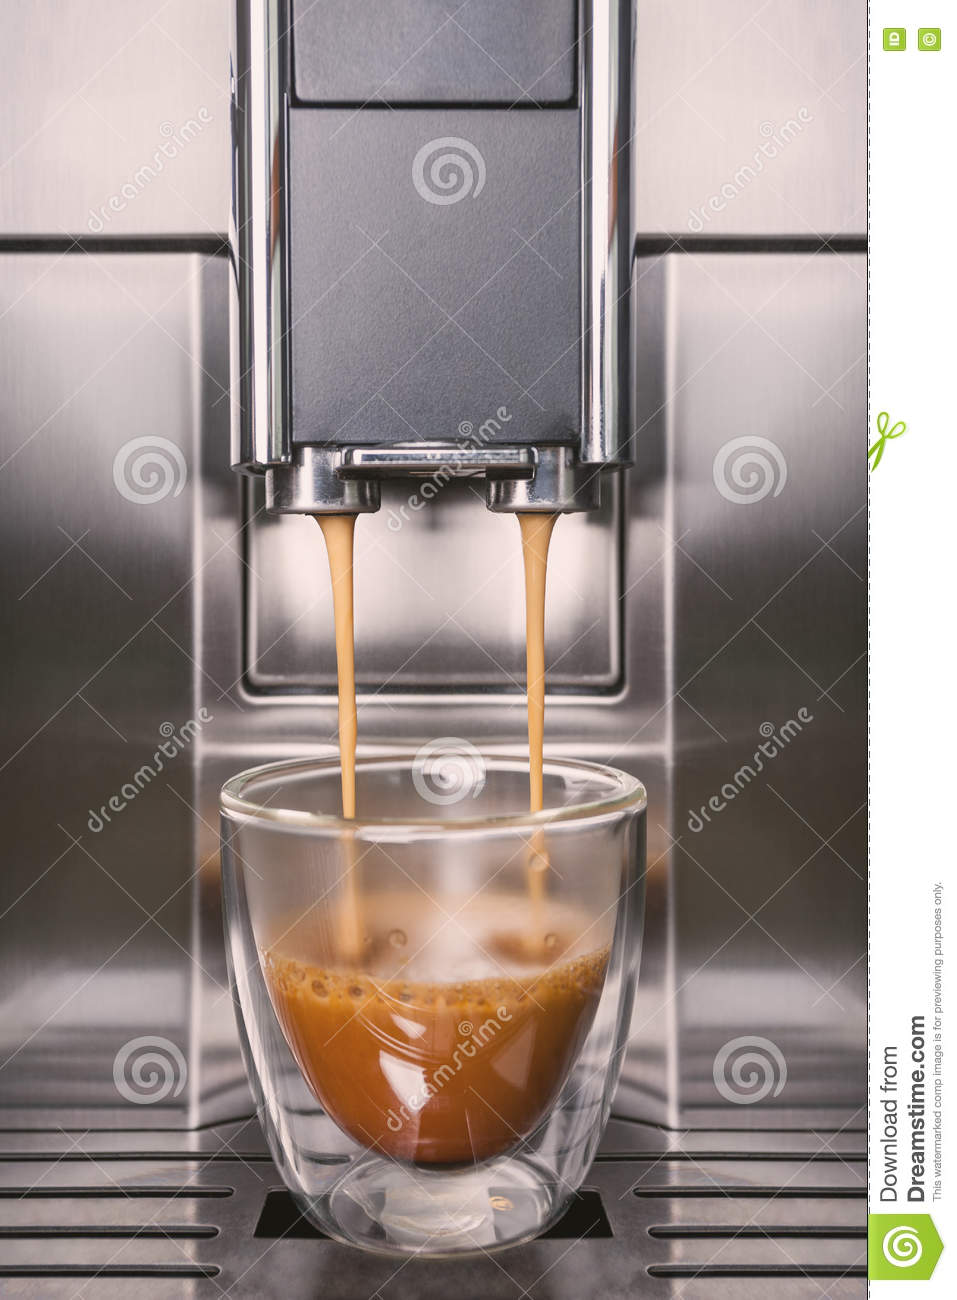 modern coffee machine stock photo  image  - modern coffee machine stock photo